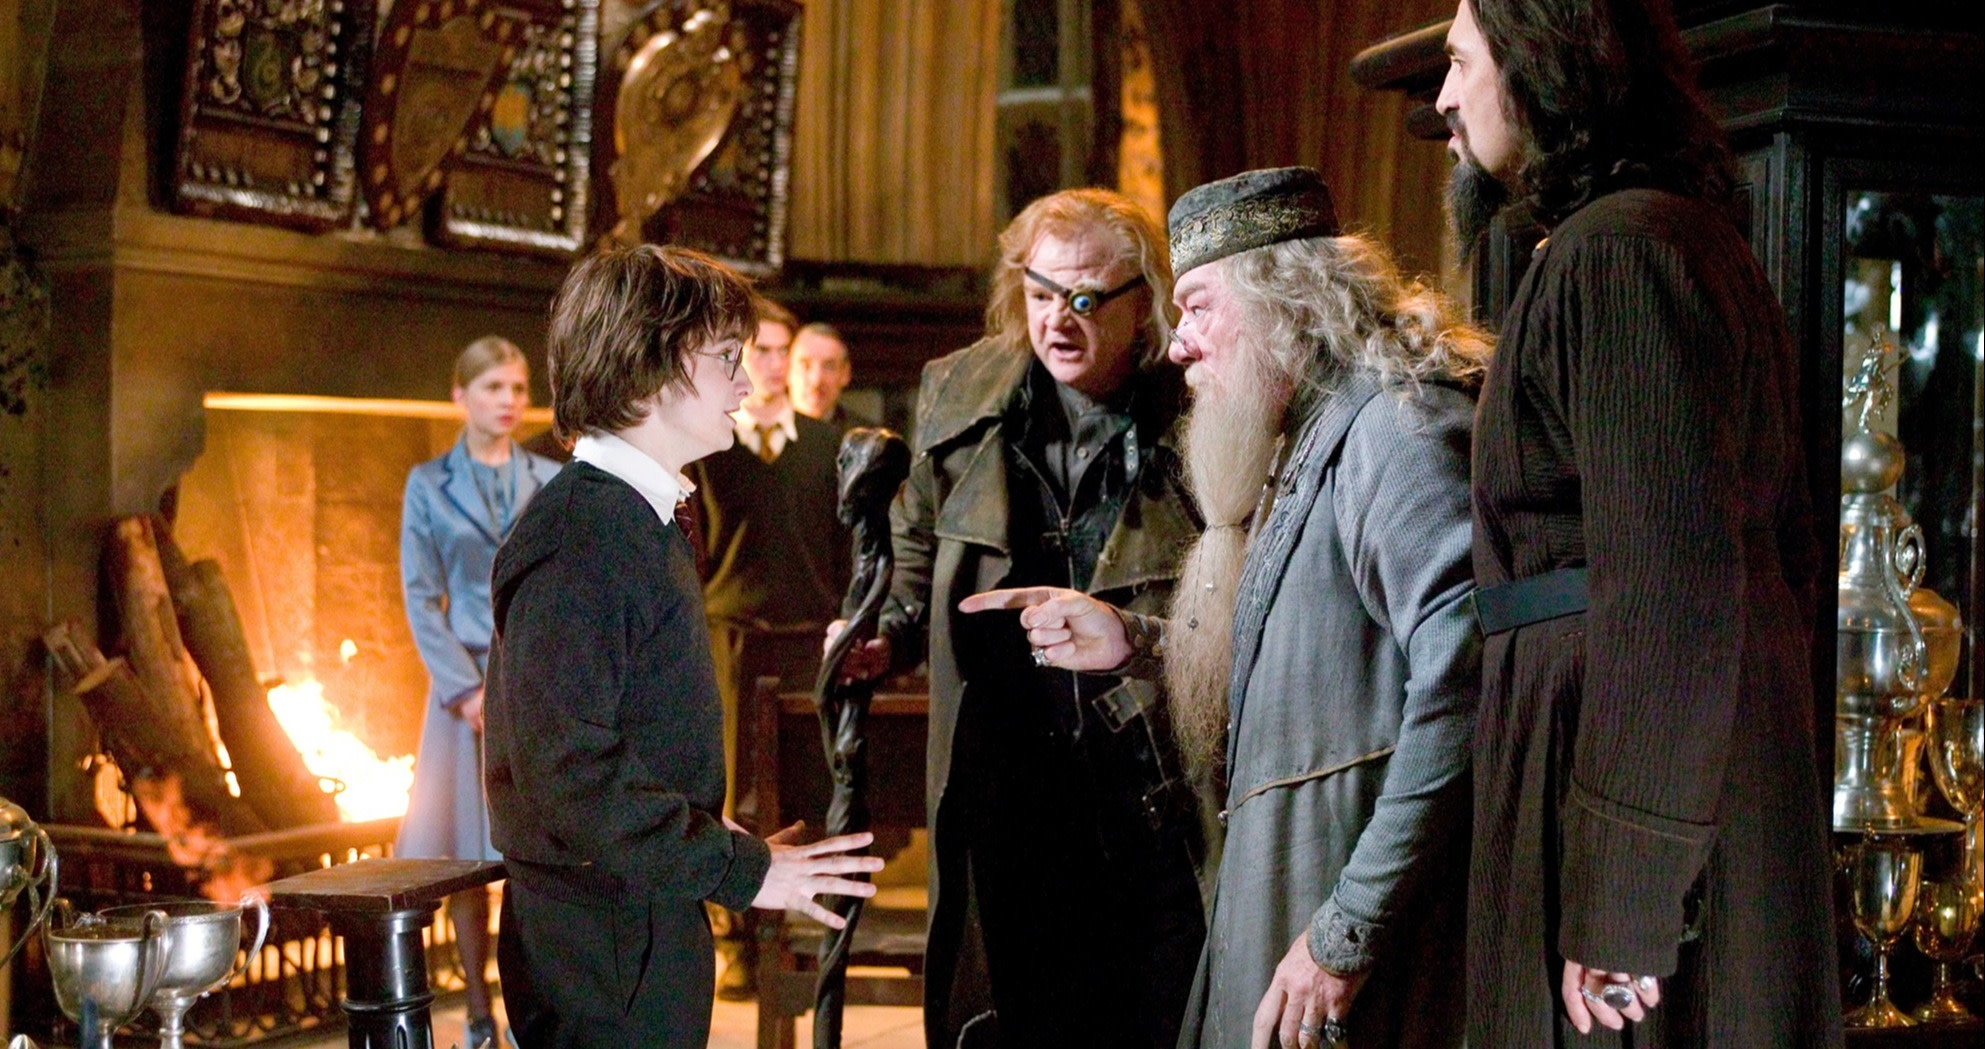 WB-F4-goblet-of-fire-harry-dumbledore-confrontation